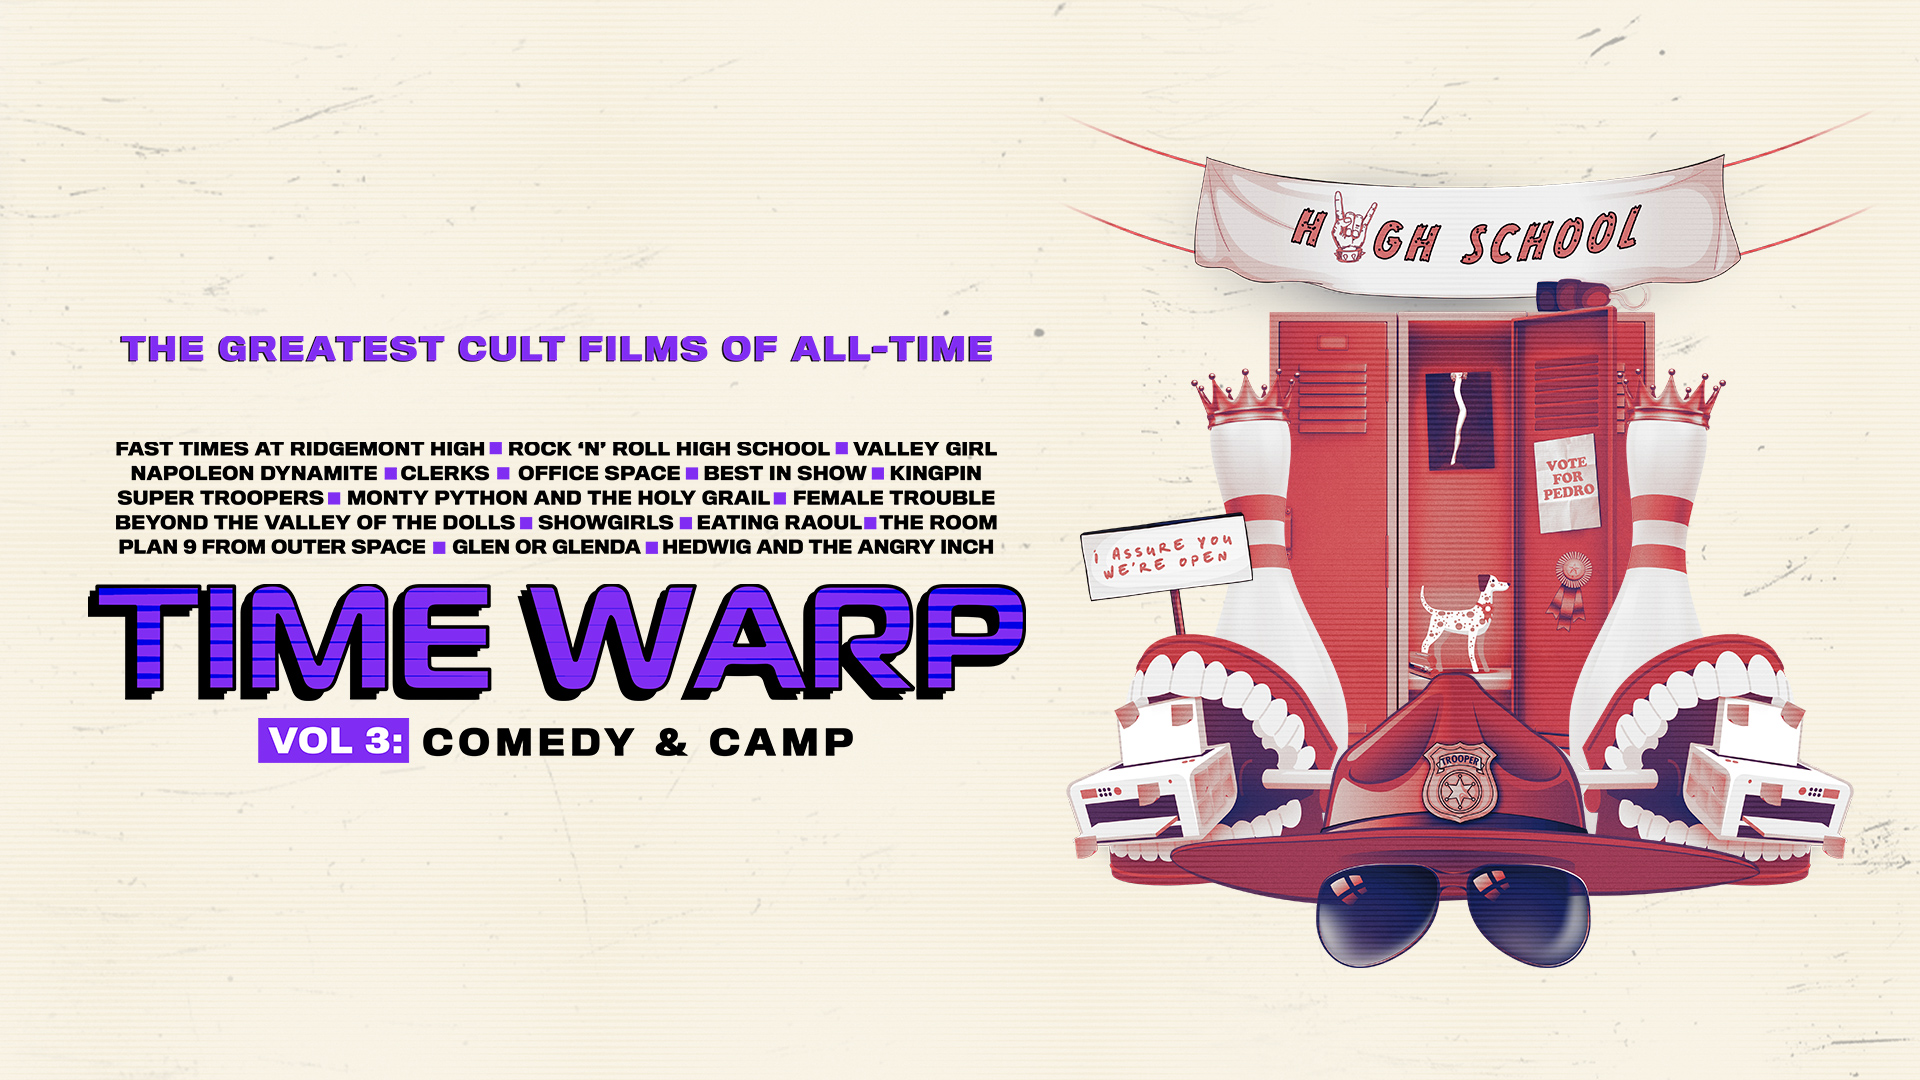 Time Warp: The Greatest Cult Films of All Time Vol 3 - Comedy & Camp